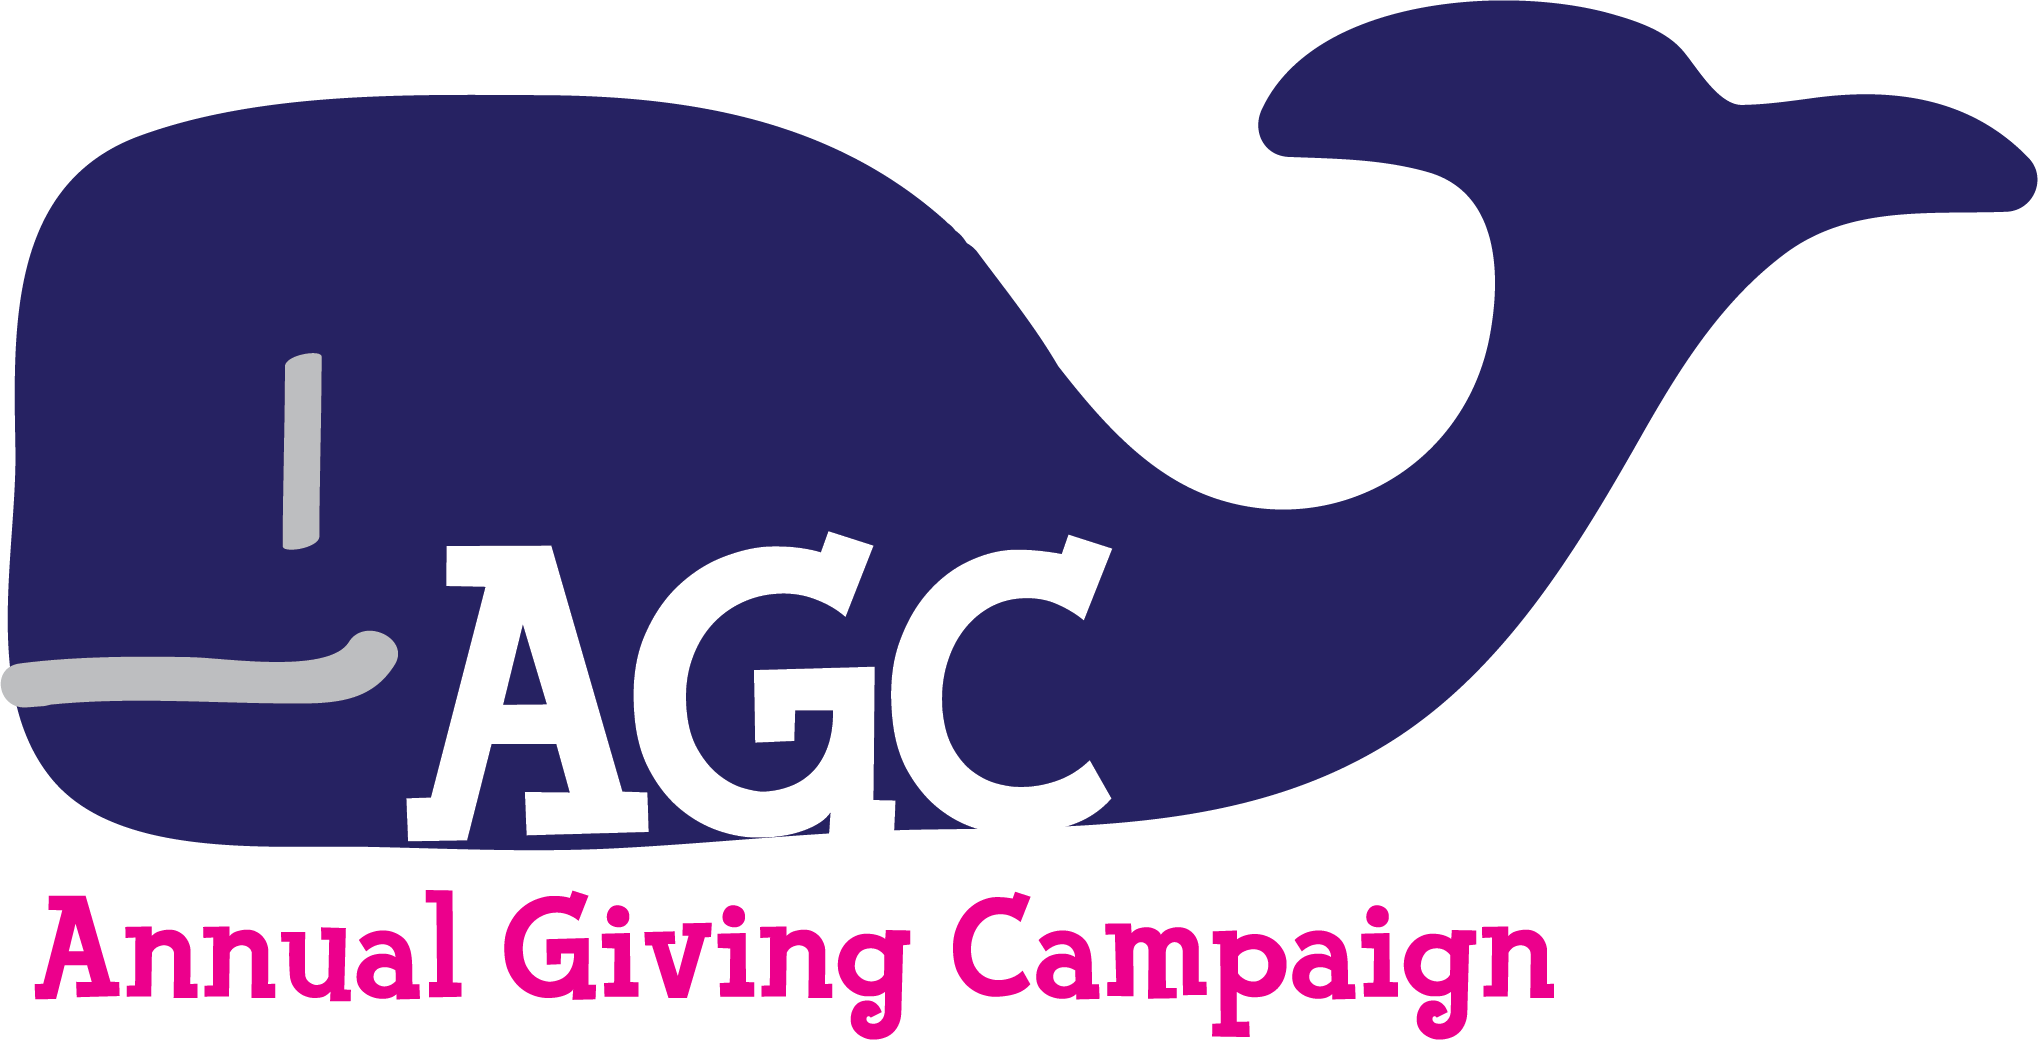 Donation clipart school funding. Annual giving campaign friends